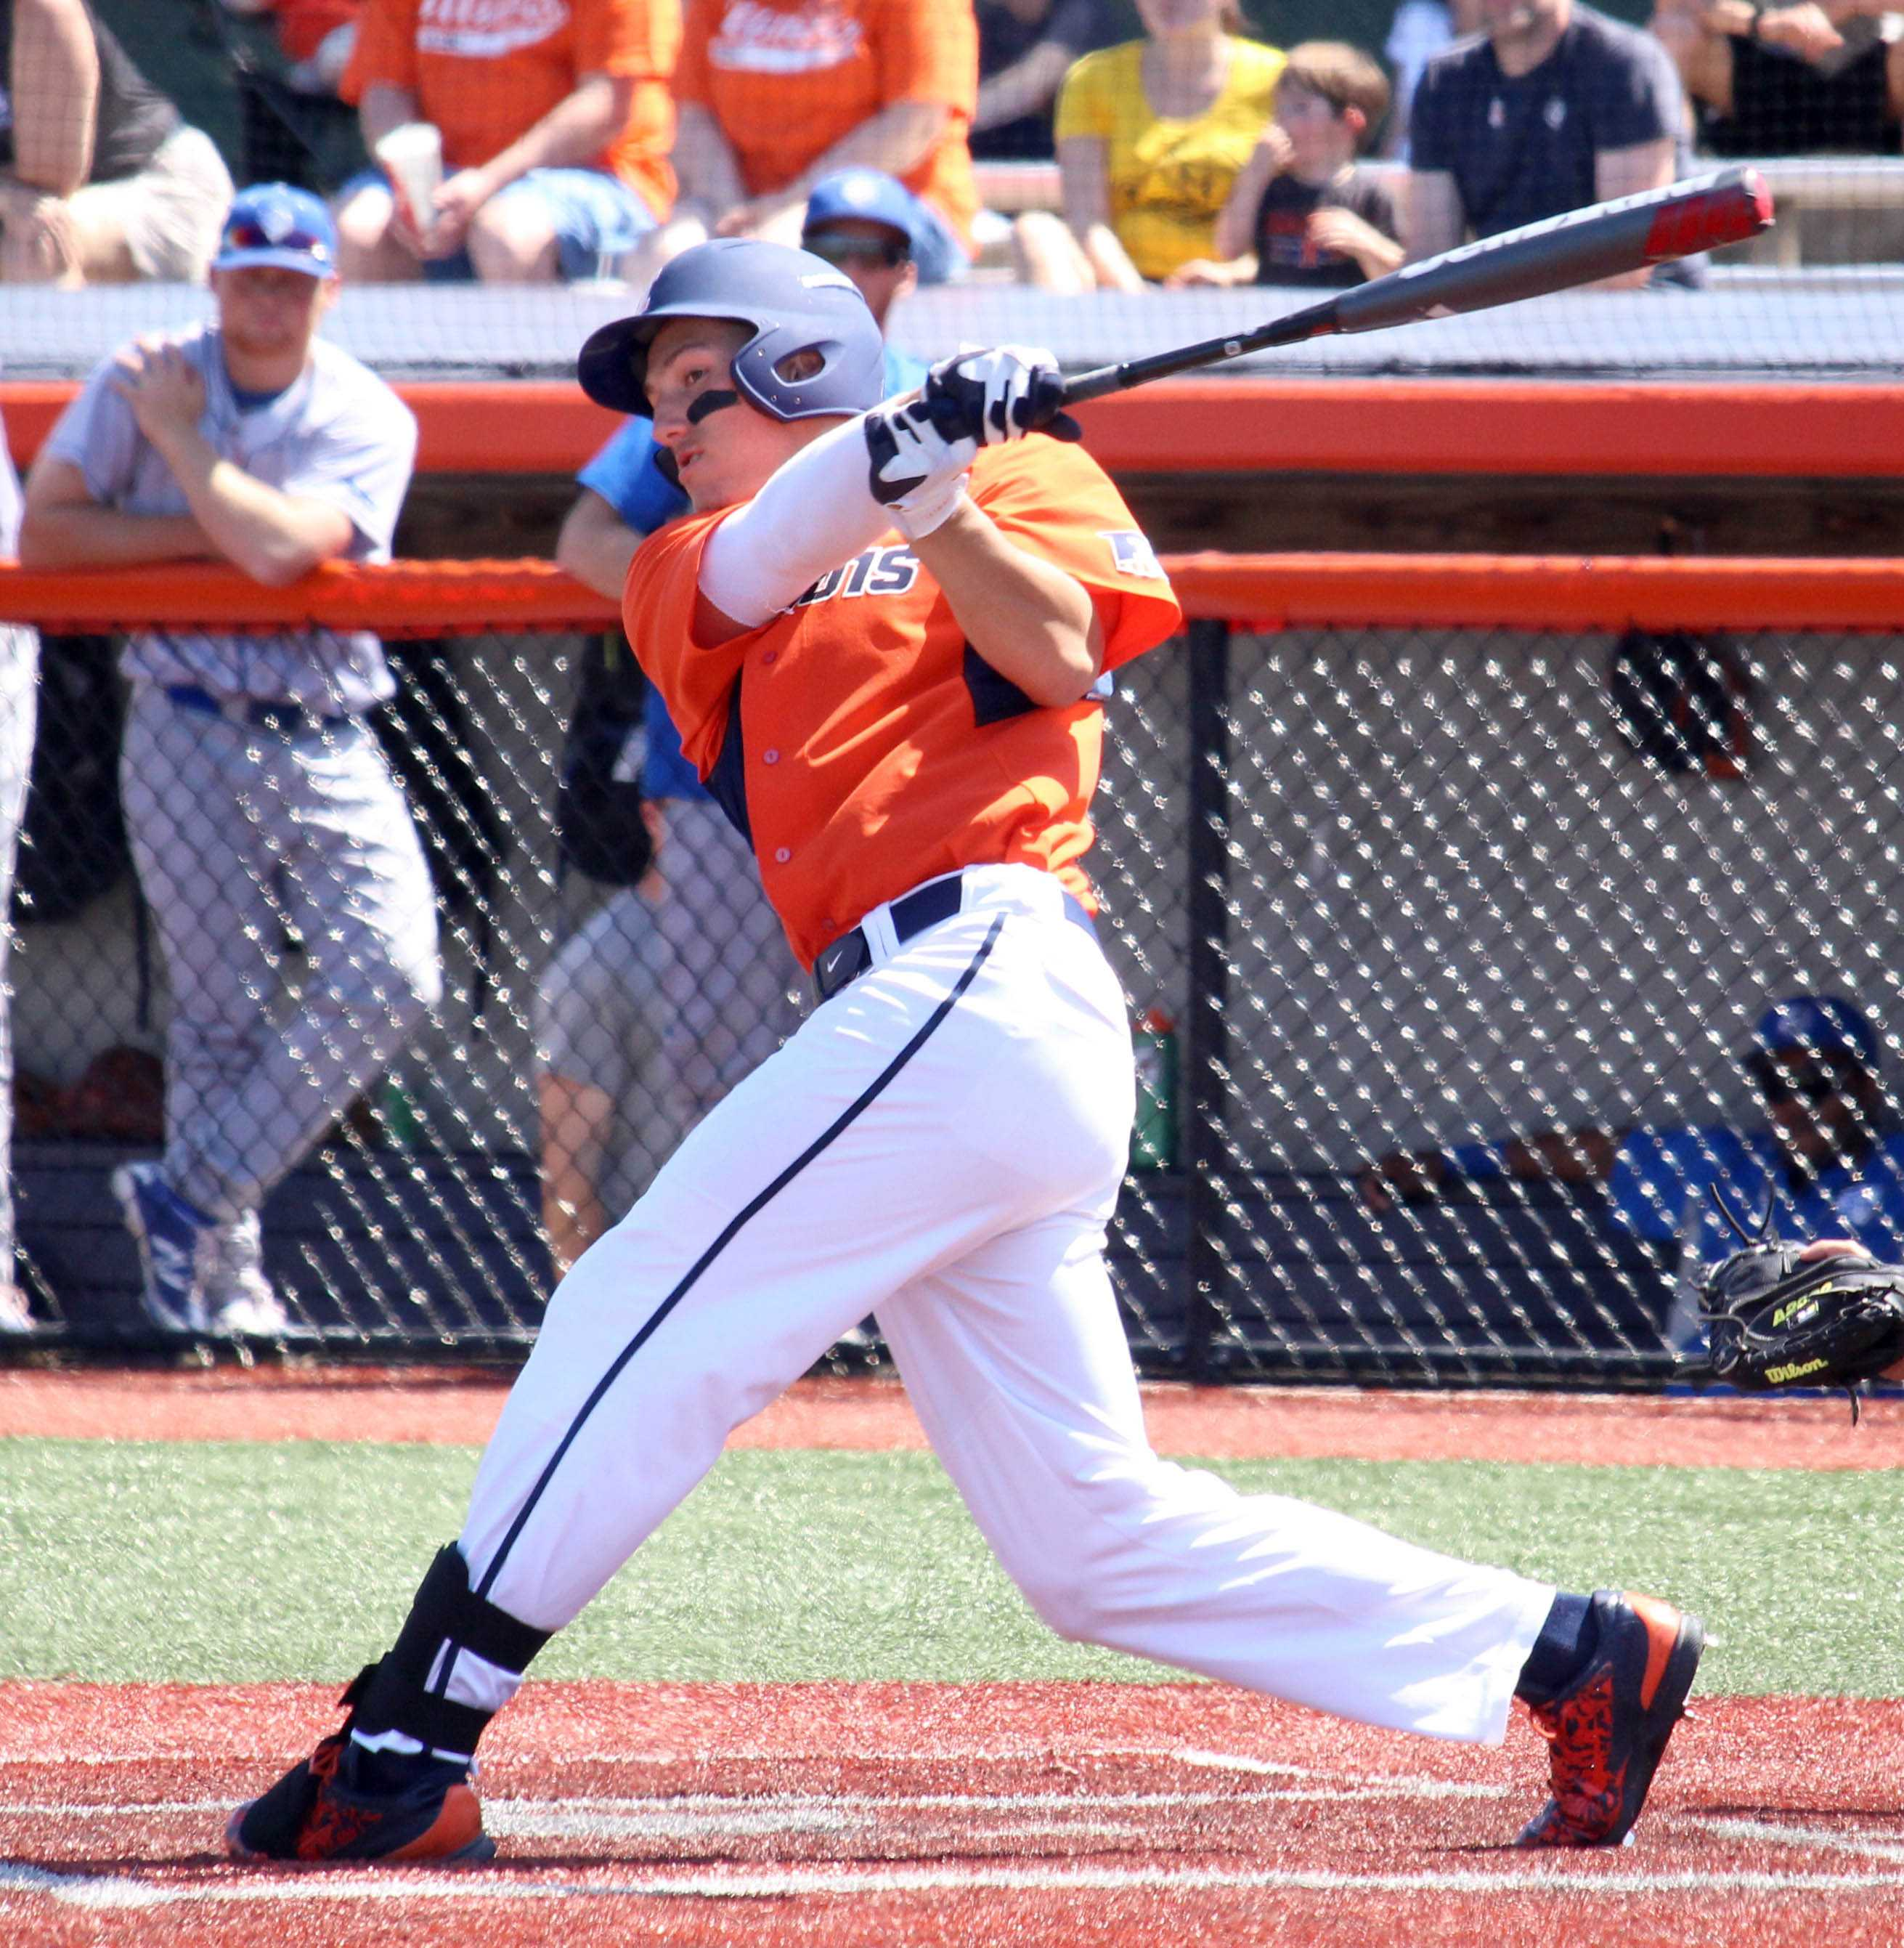 Illinois' Pat McInerney singles at Illinois Field on April 17, 2016.